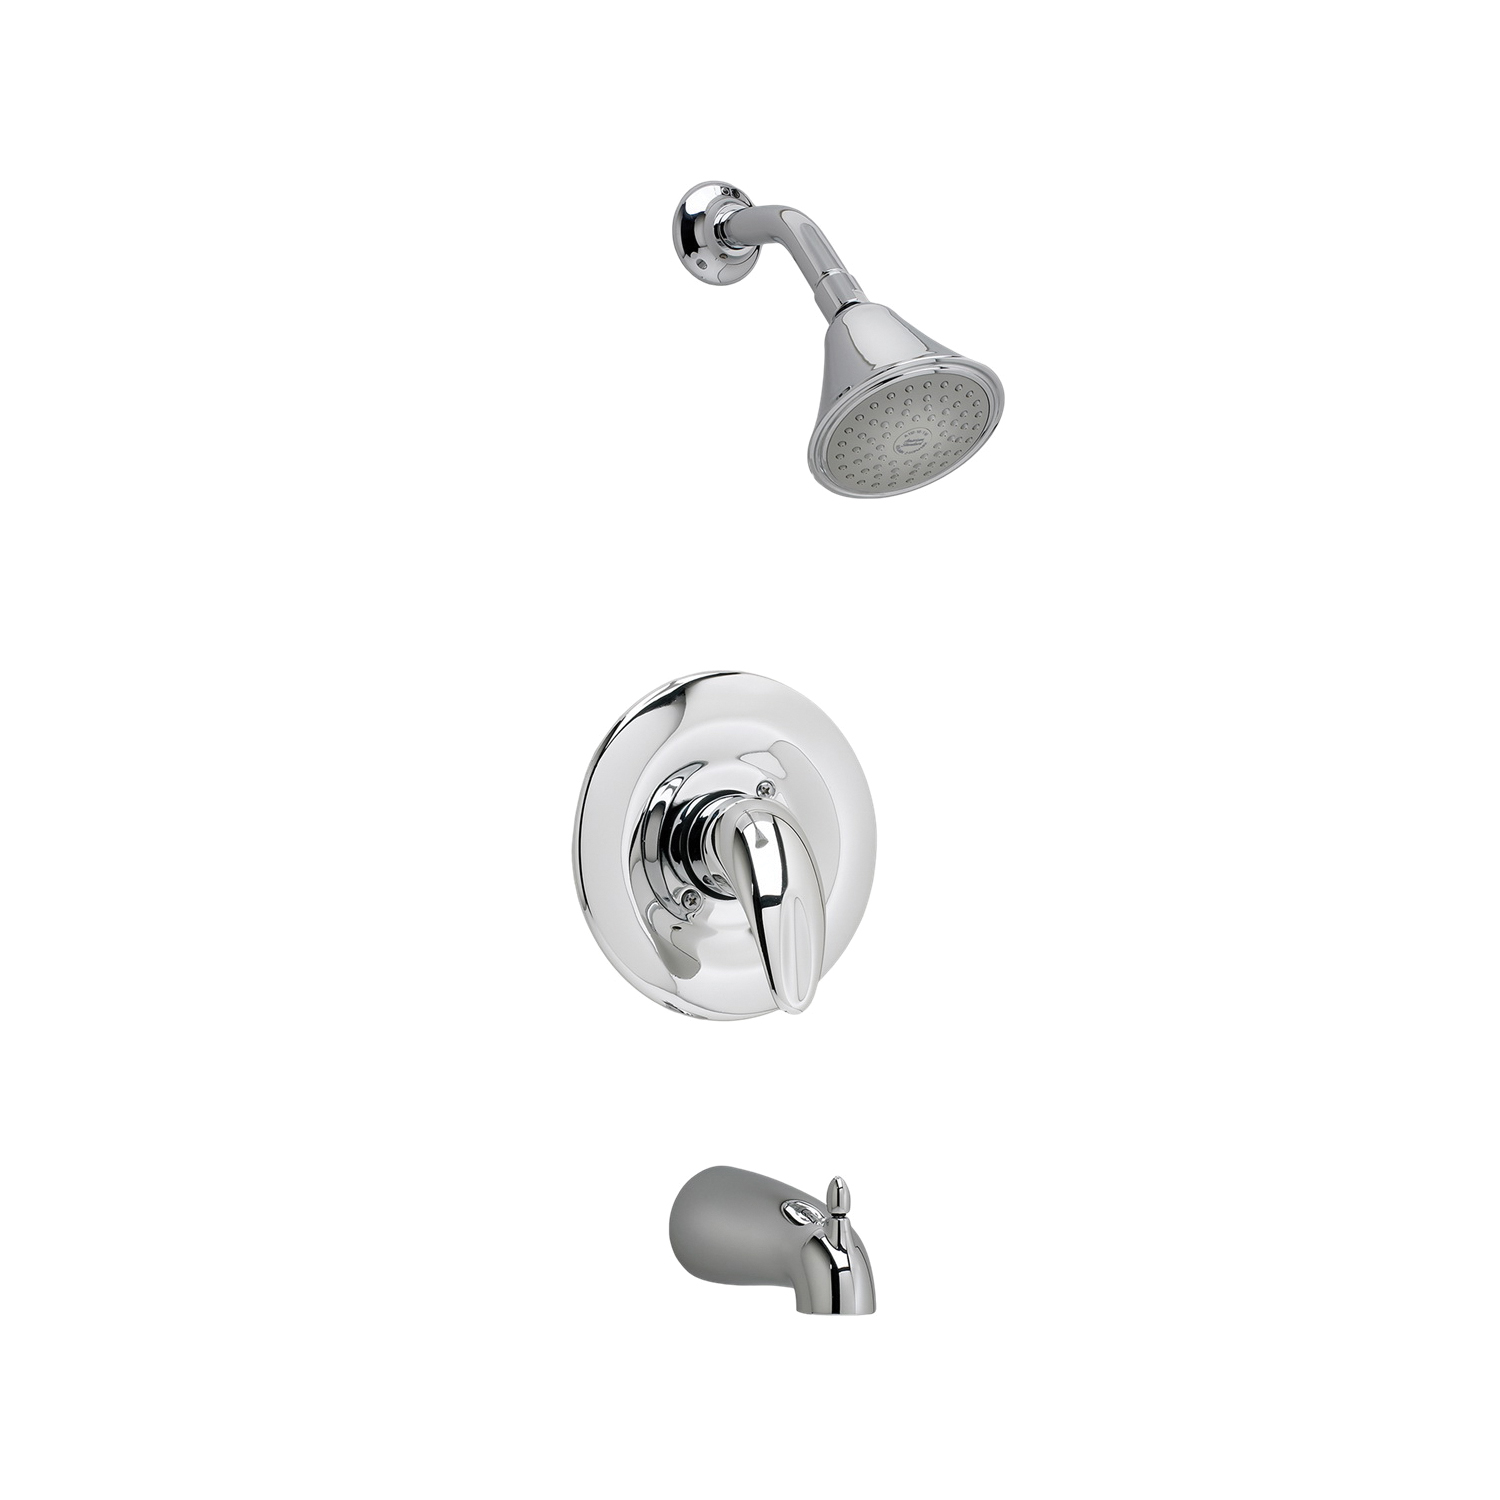 American Standard T385501.002 Shower Only Trim Kit, 2.5 gpm Shower, Hand Shower Yes/No: No, Polished Chrome